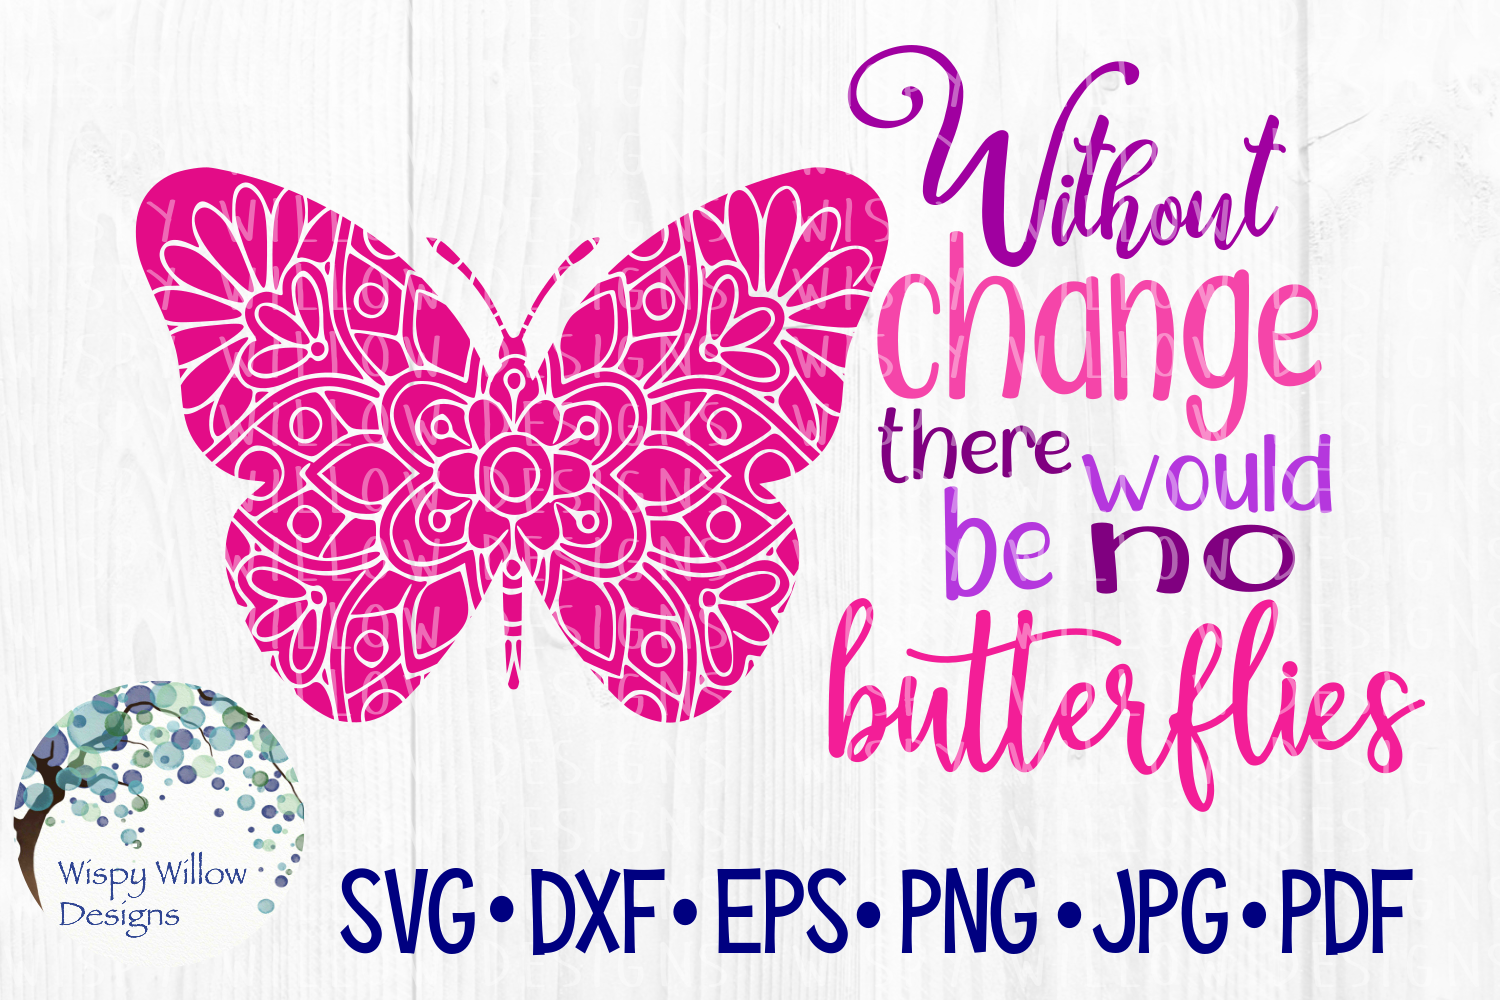 Download Free Without Change There Would Be No Butterflies Graphic By for Cricut Explore, Silhouette and other cutting machines.